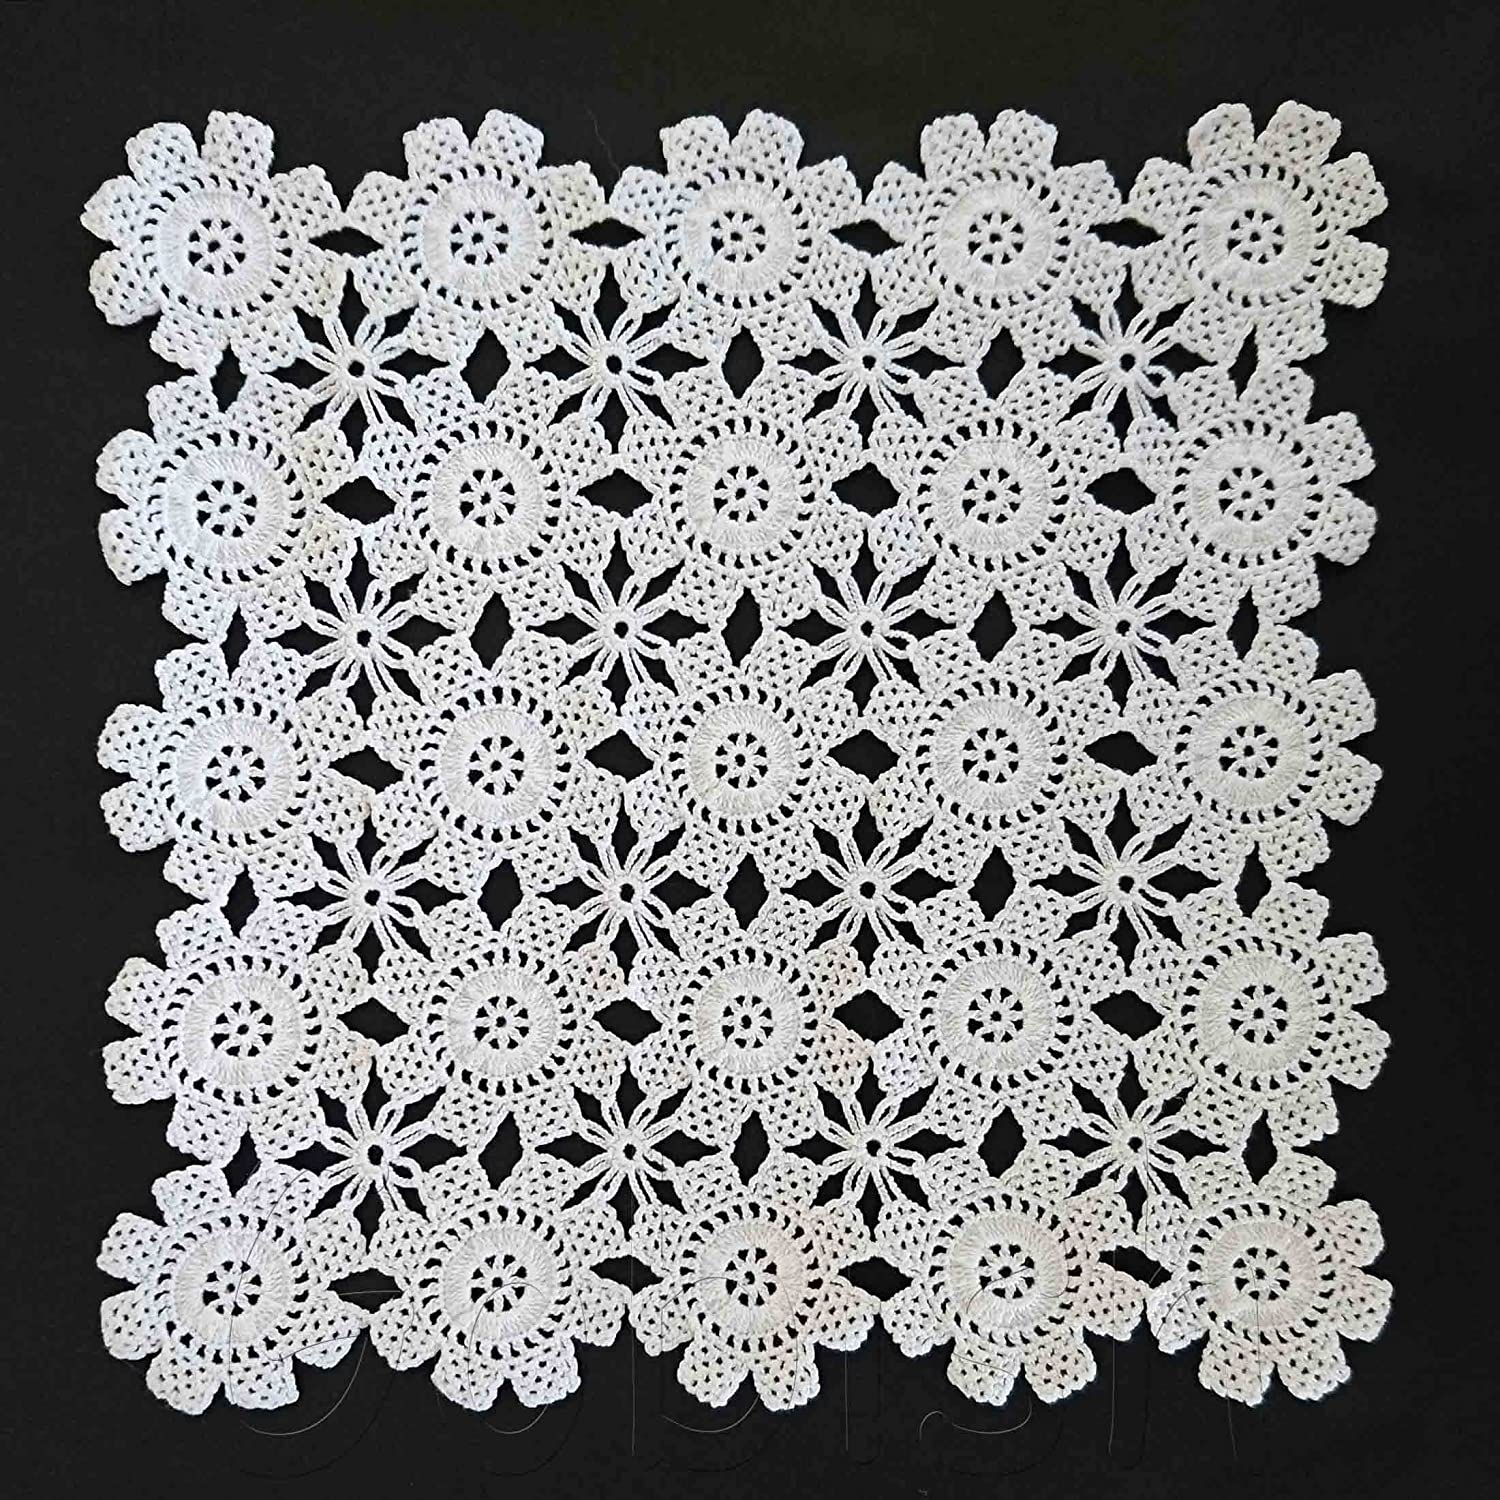 Handmade Crocheted White Square Doily Small Tablecloth White Doilies